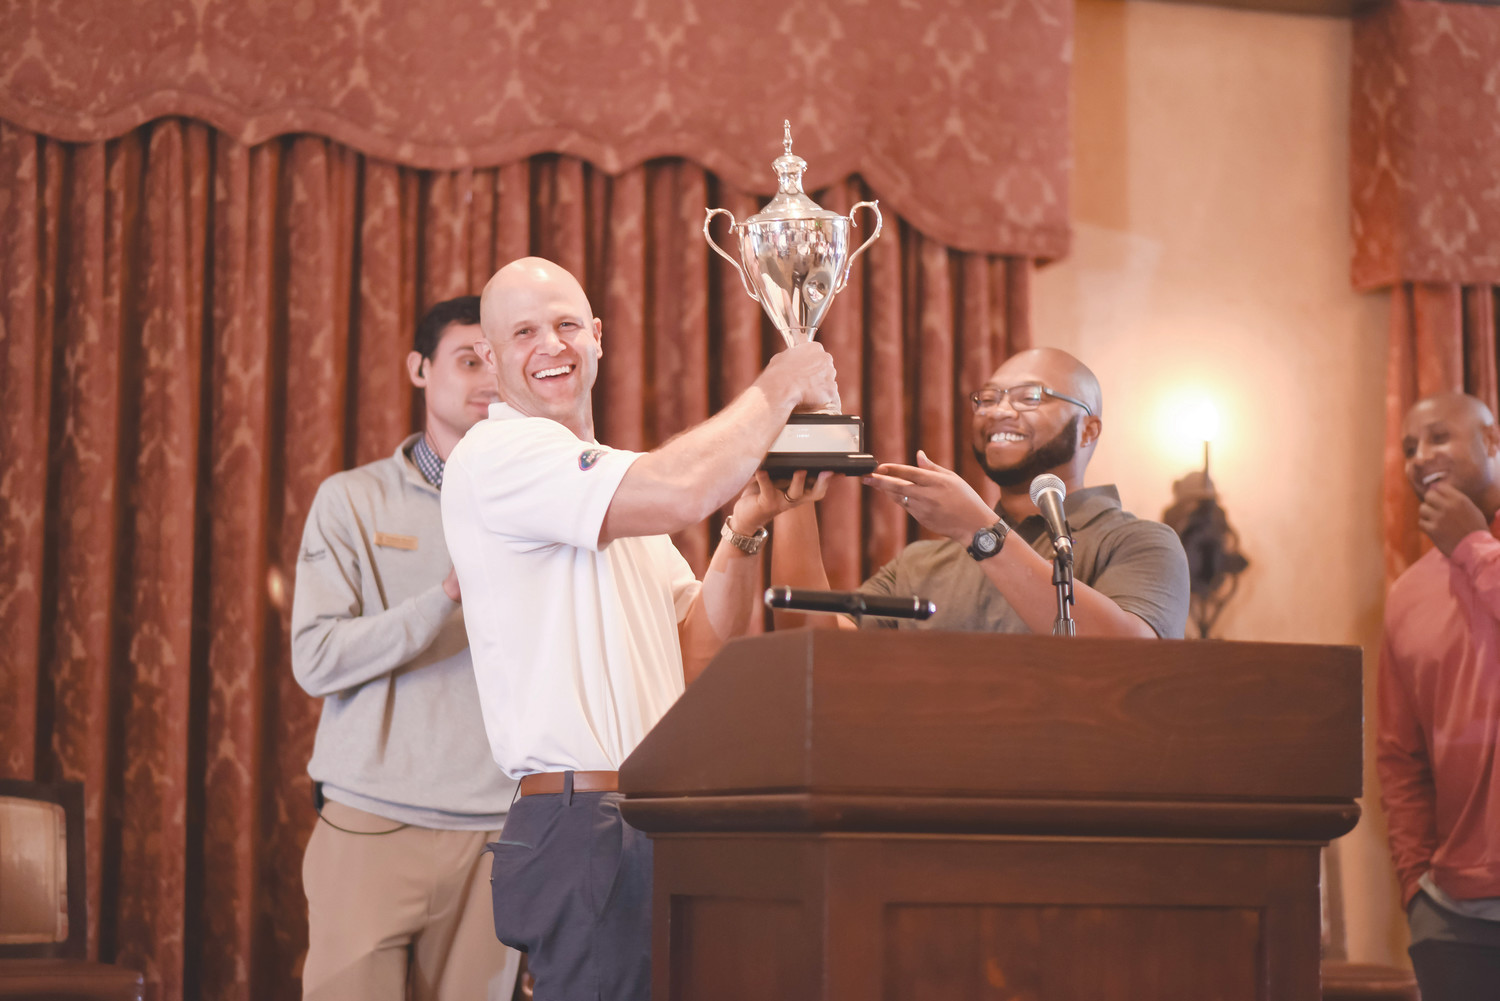 Danny Wuerffel and Demetrius Summerville, executive director of Kaley Square in Orlando (Desire Street Ministry partner), award the Desire Cup to the Florida Gators golfers, who won the tournament 32-30.